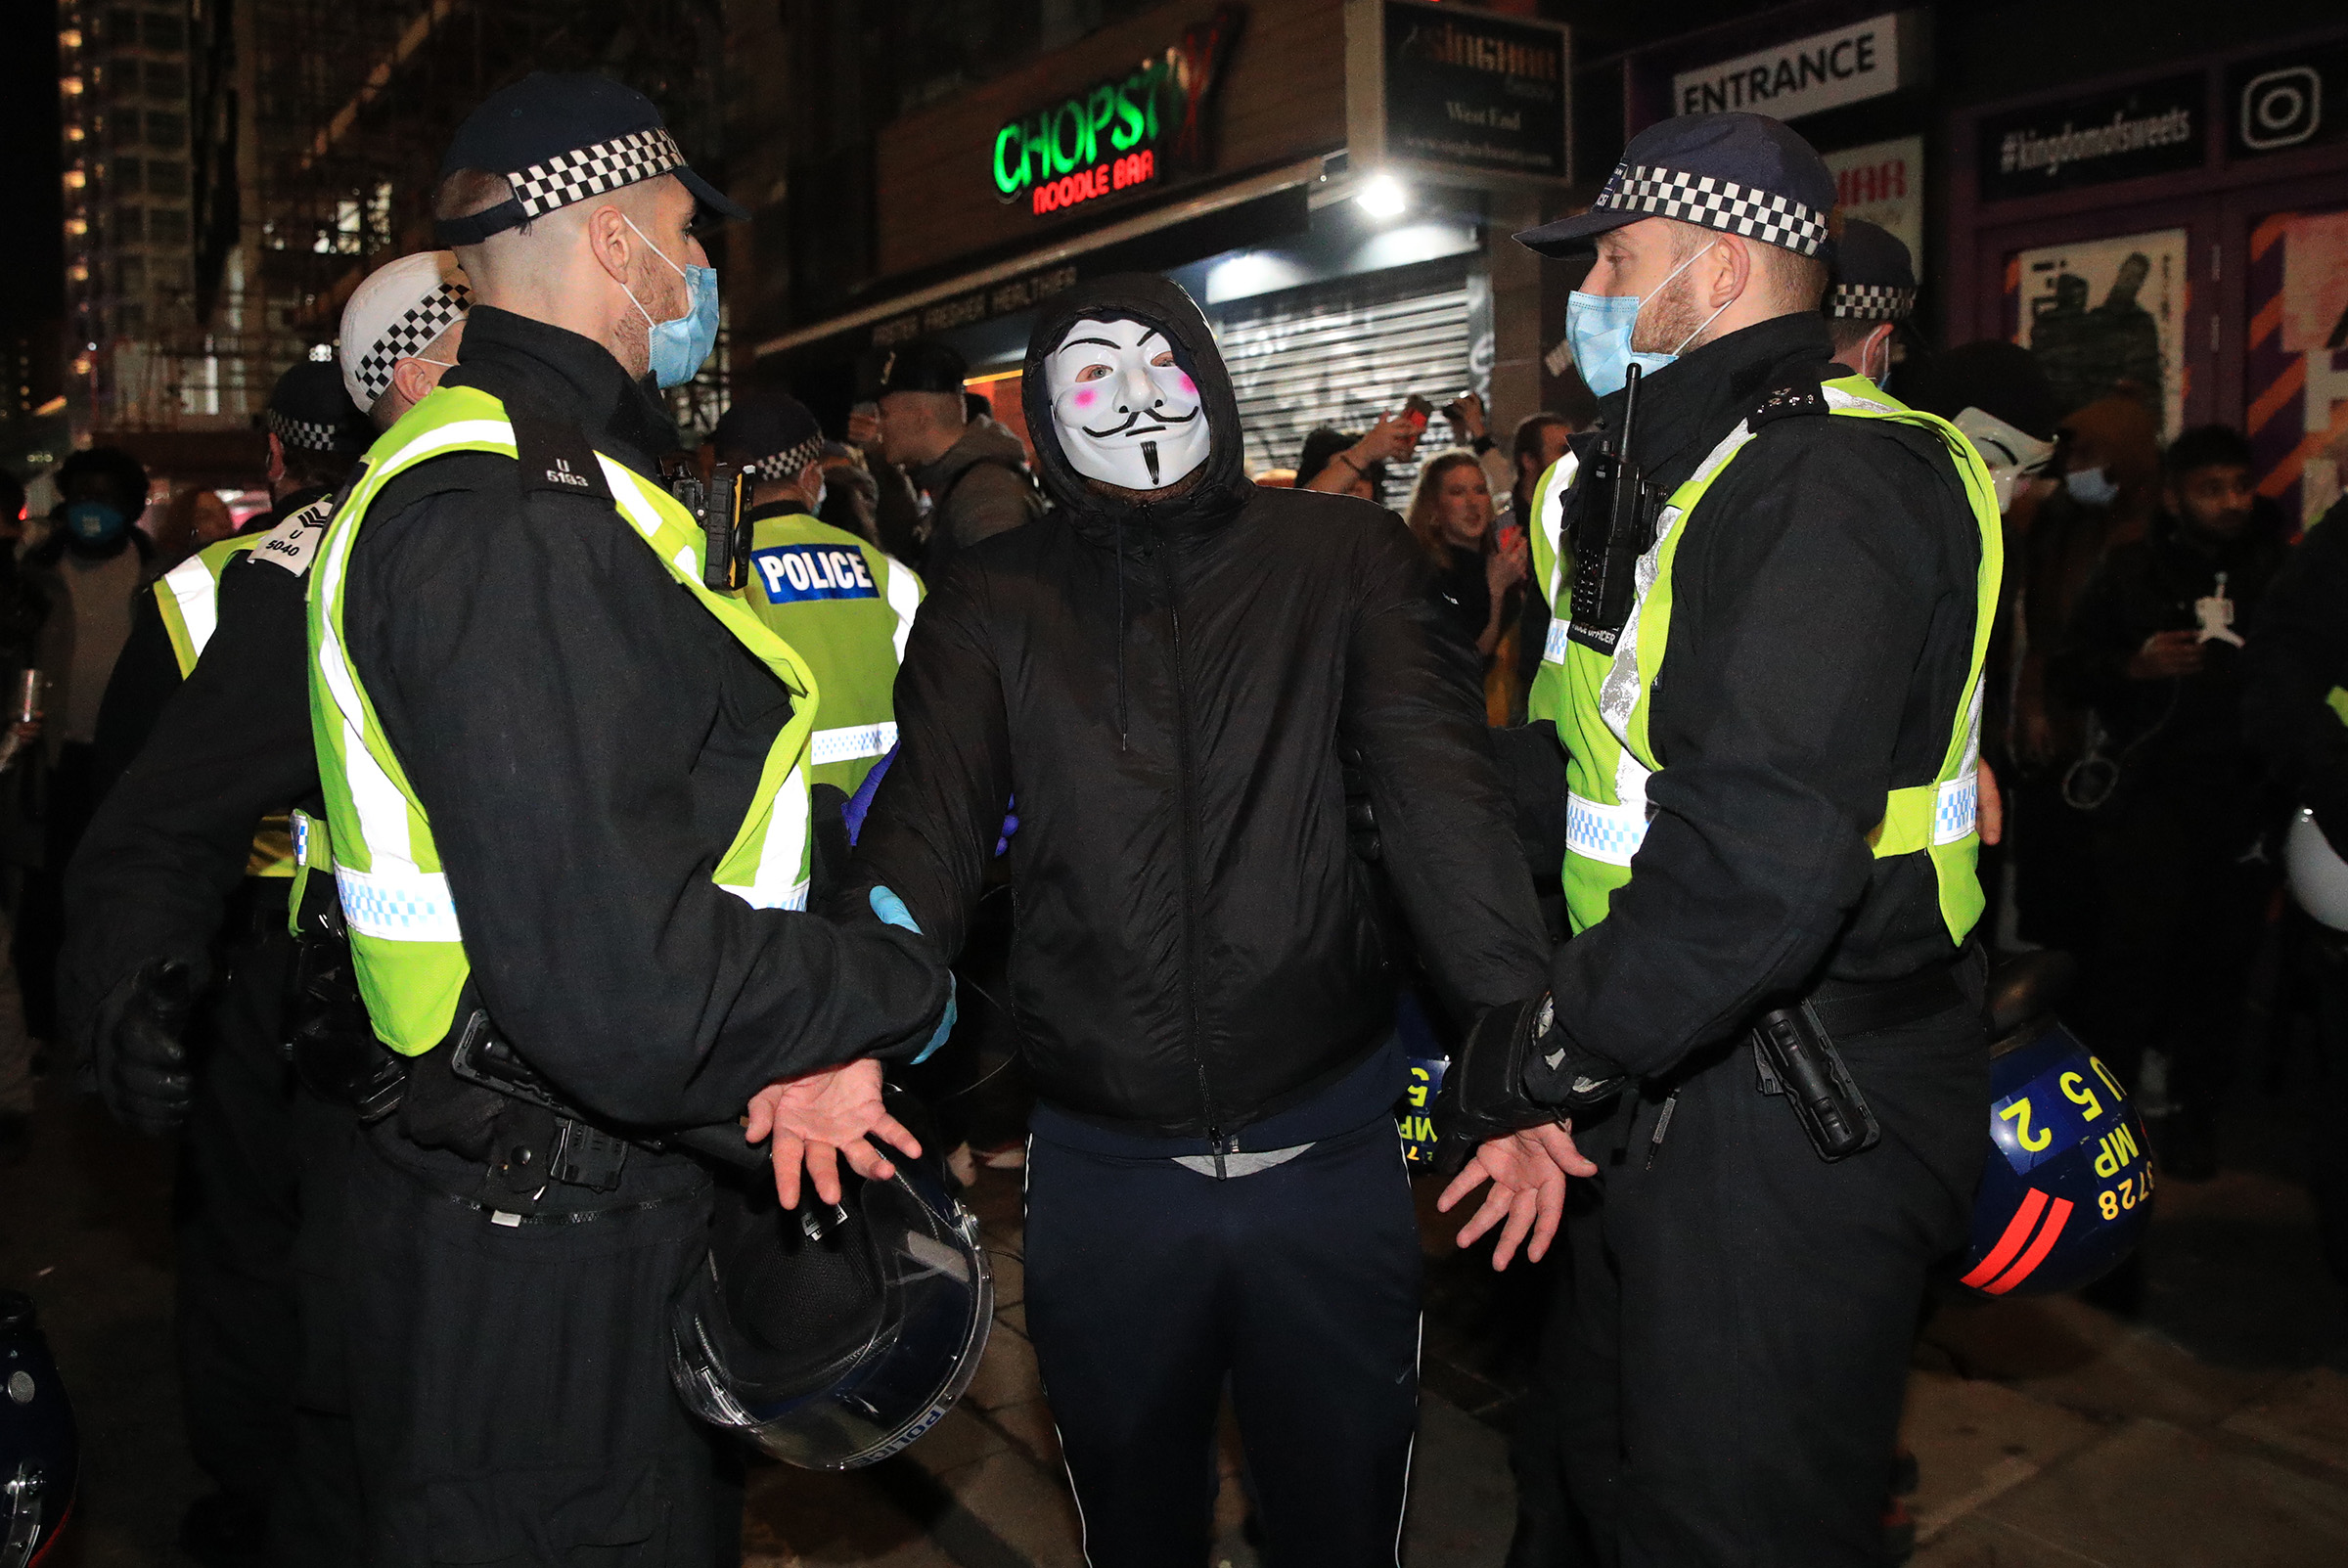 Police detain a protester during the Million Mask March anti-establishment protest at Trafalgar Square in London on Thursday, November 5.